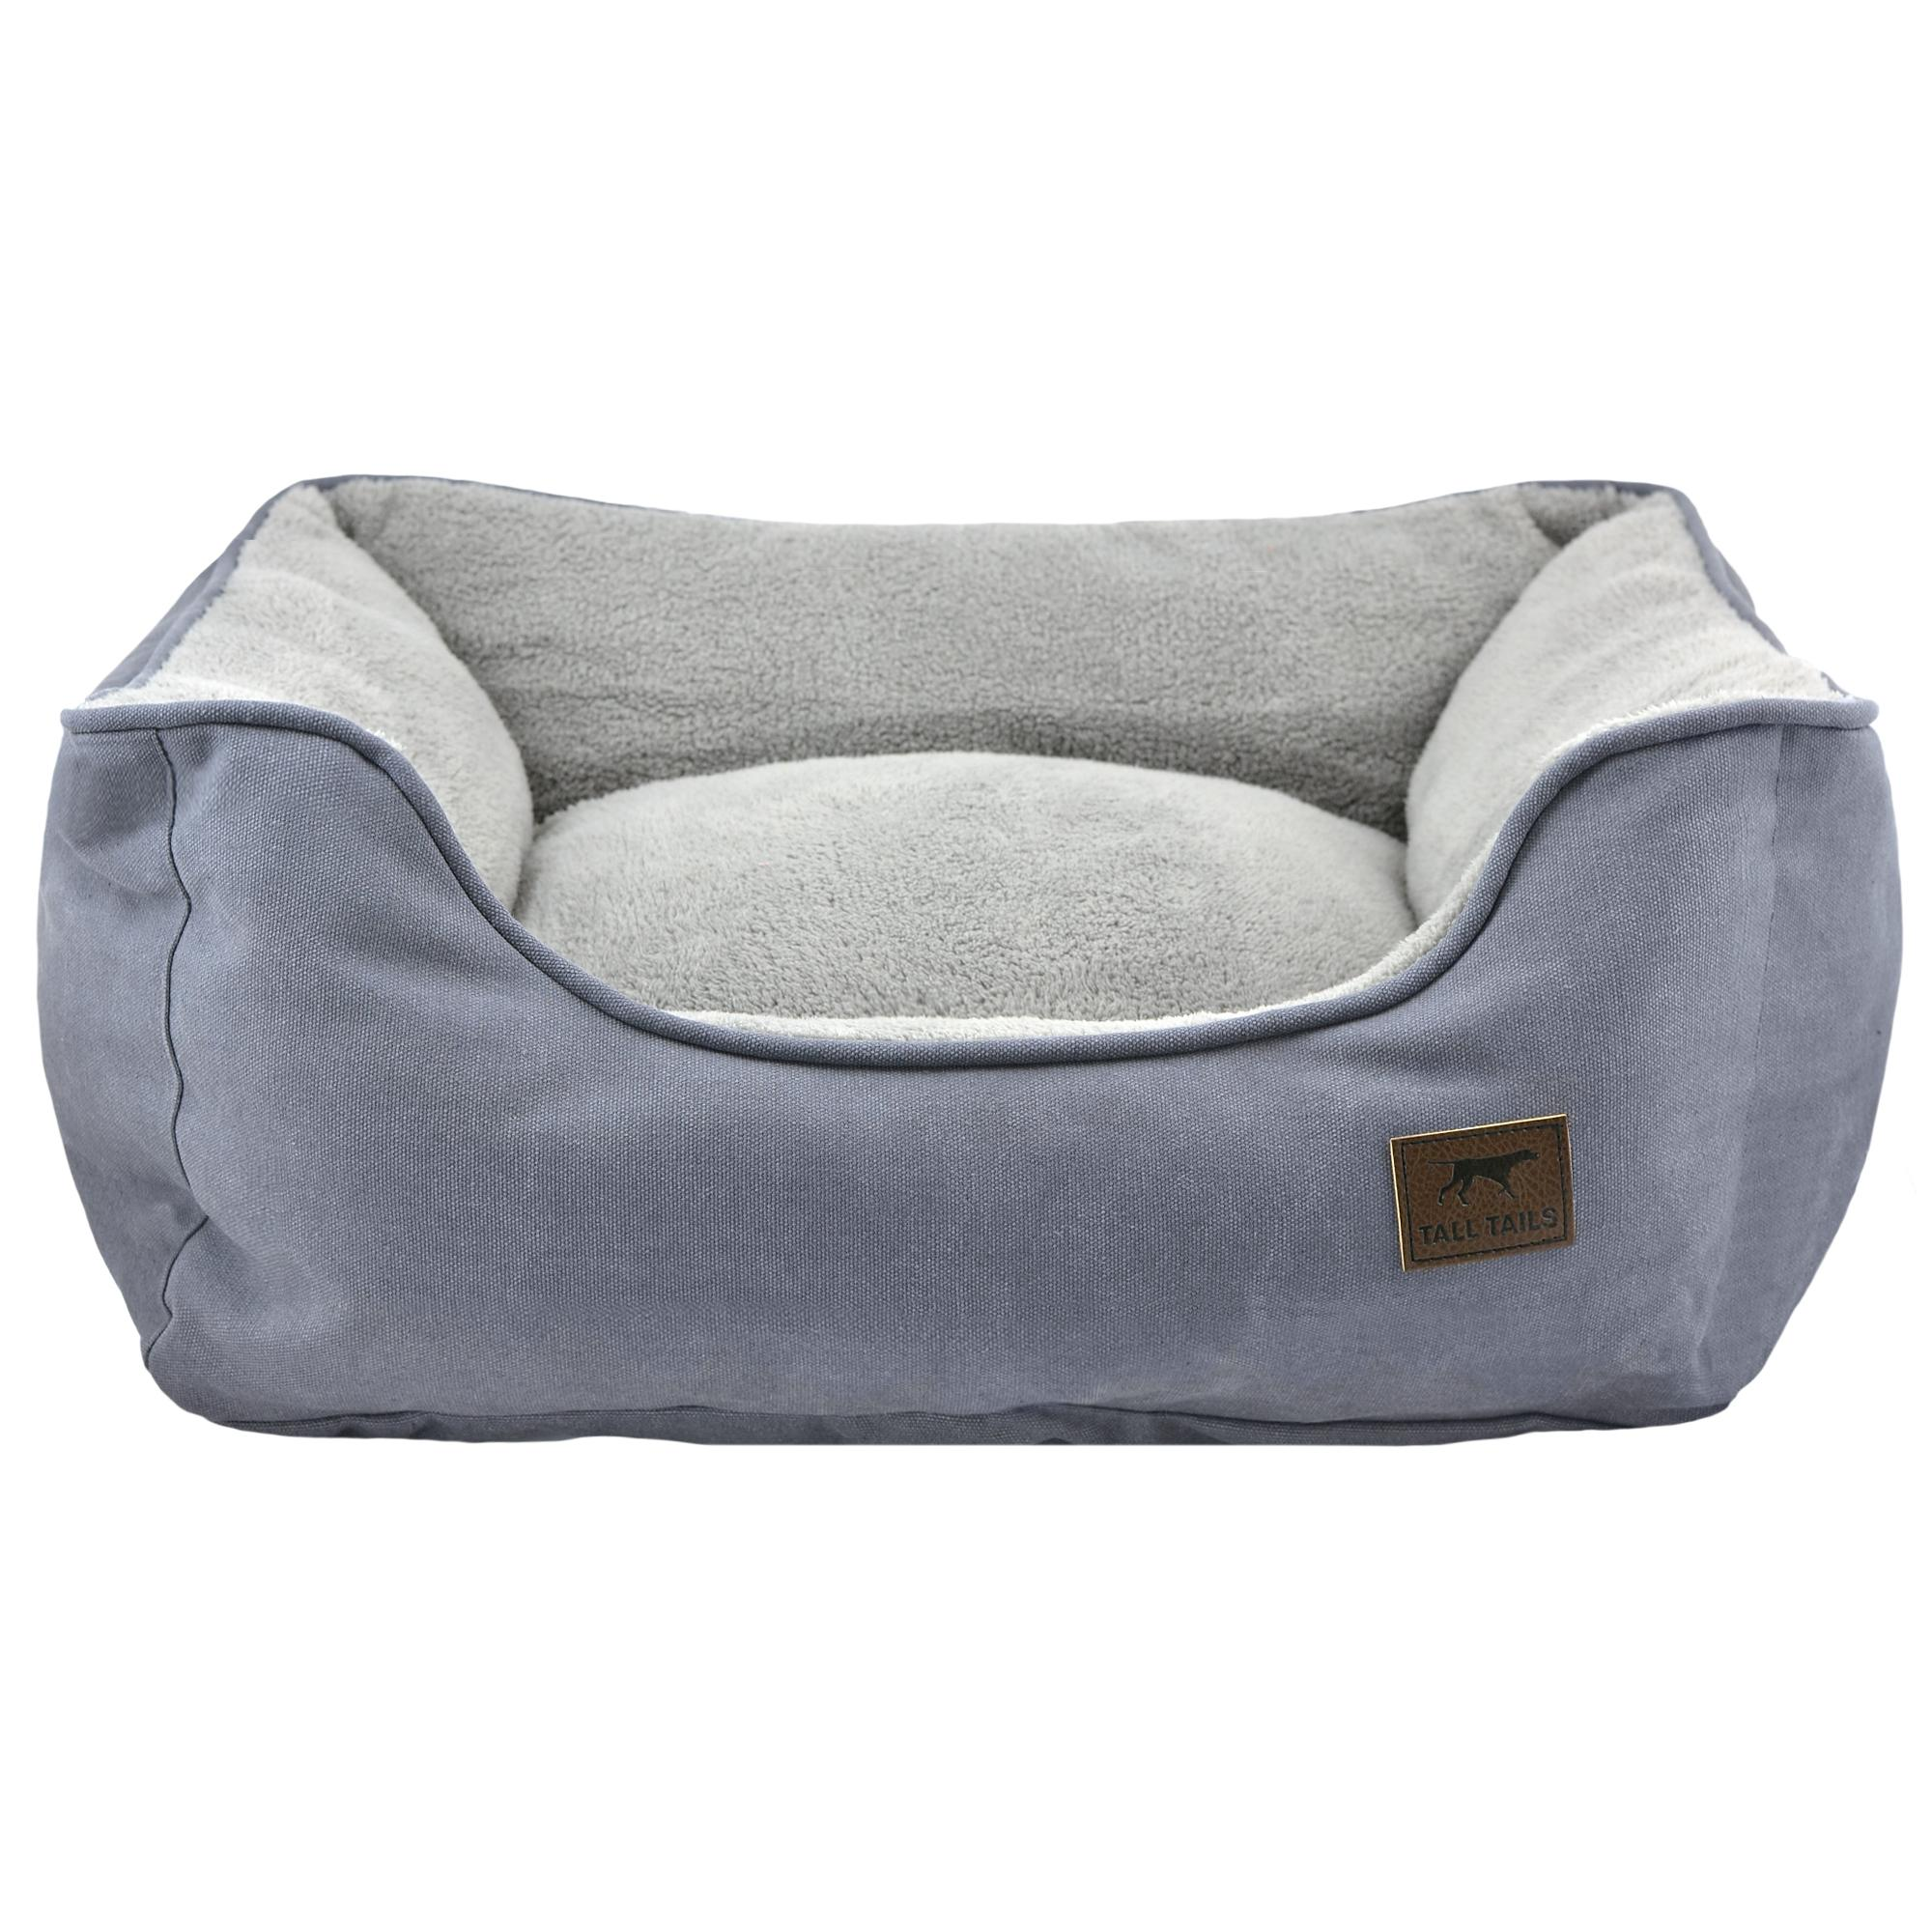 Tall Tails Dream Chaser Bolster Dog Bed, Charcoal, Small